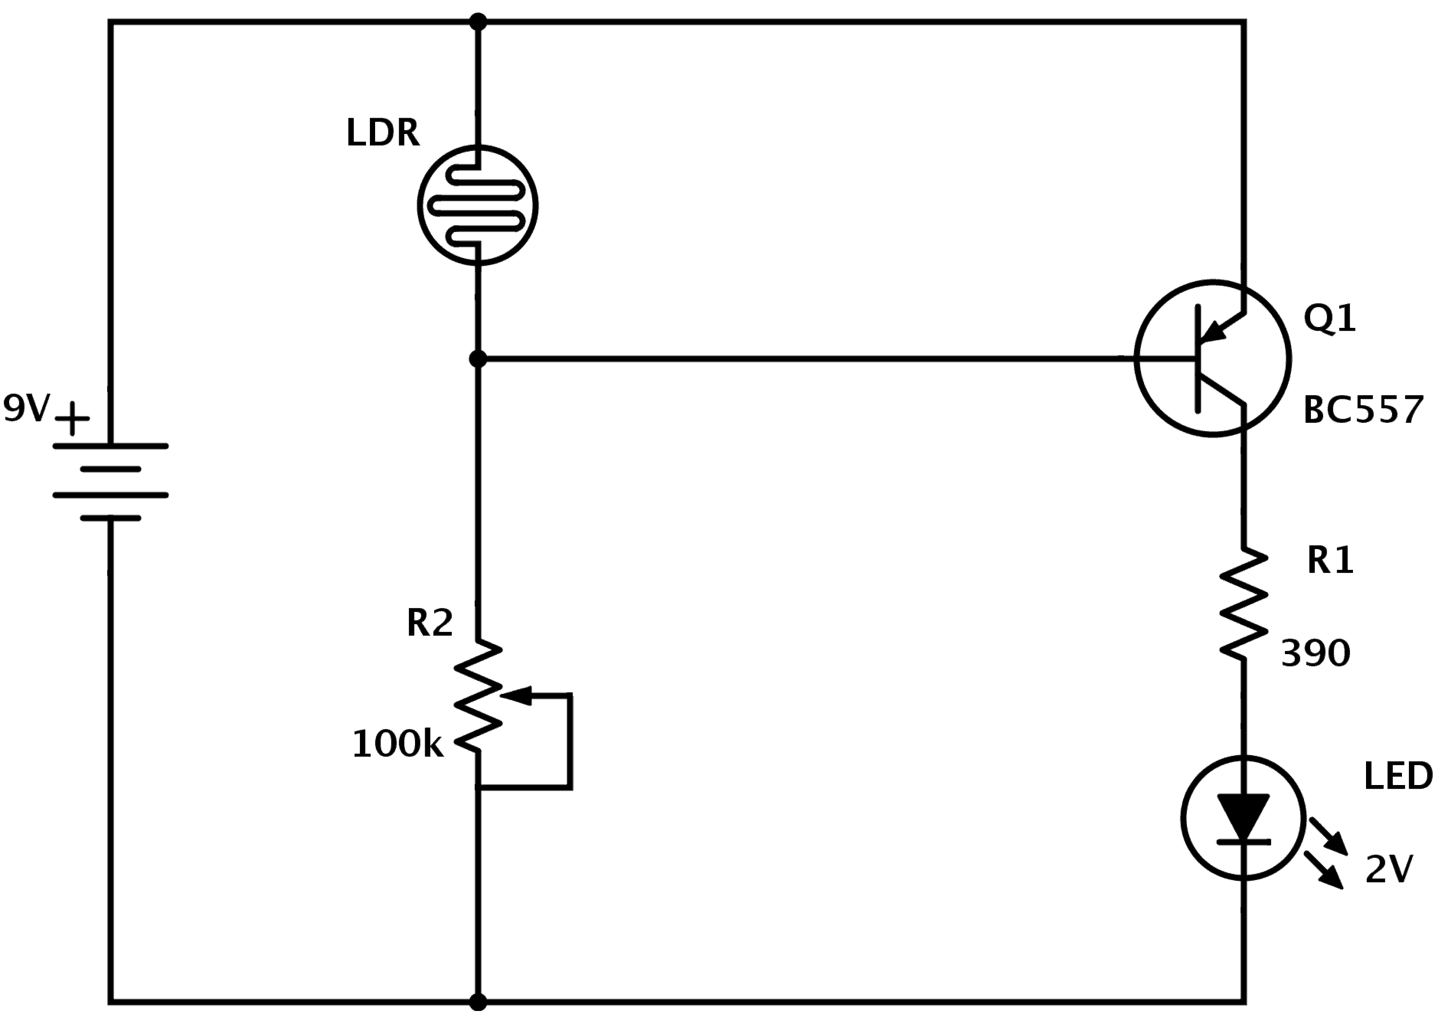 Ldr Circuit Diagram Build Electronic Circuits Need The Wiring For Starting On A John With Pnp Transistor Dark Detector